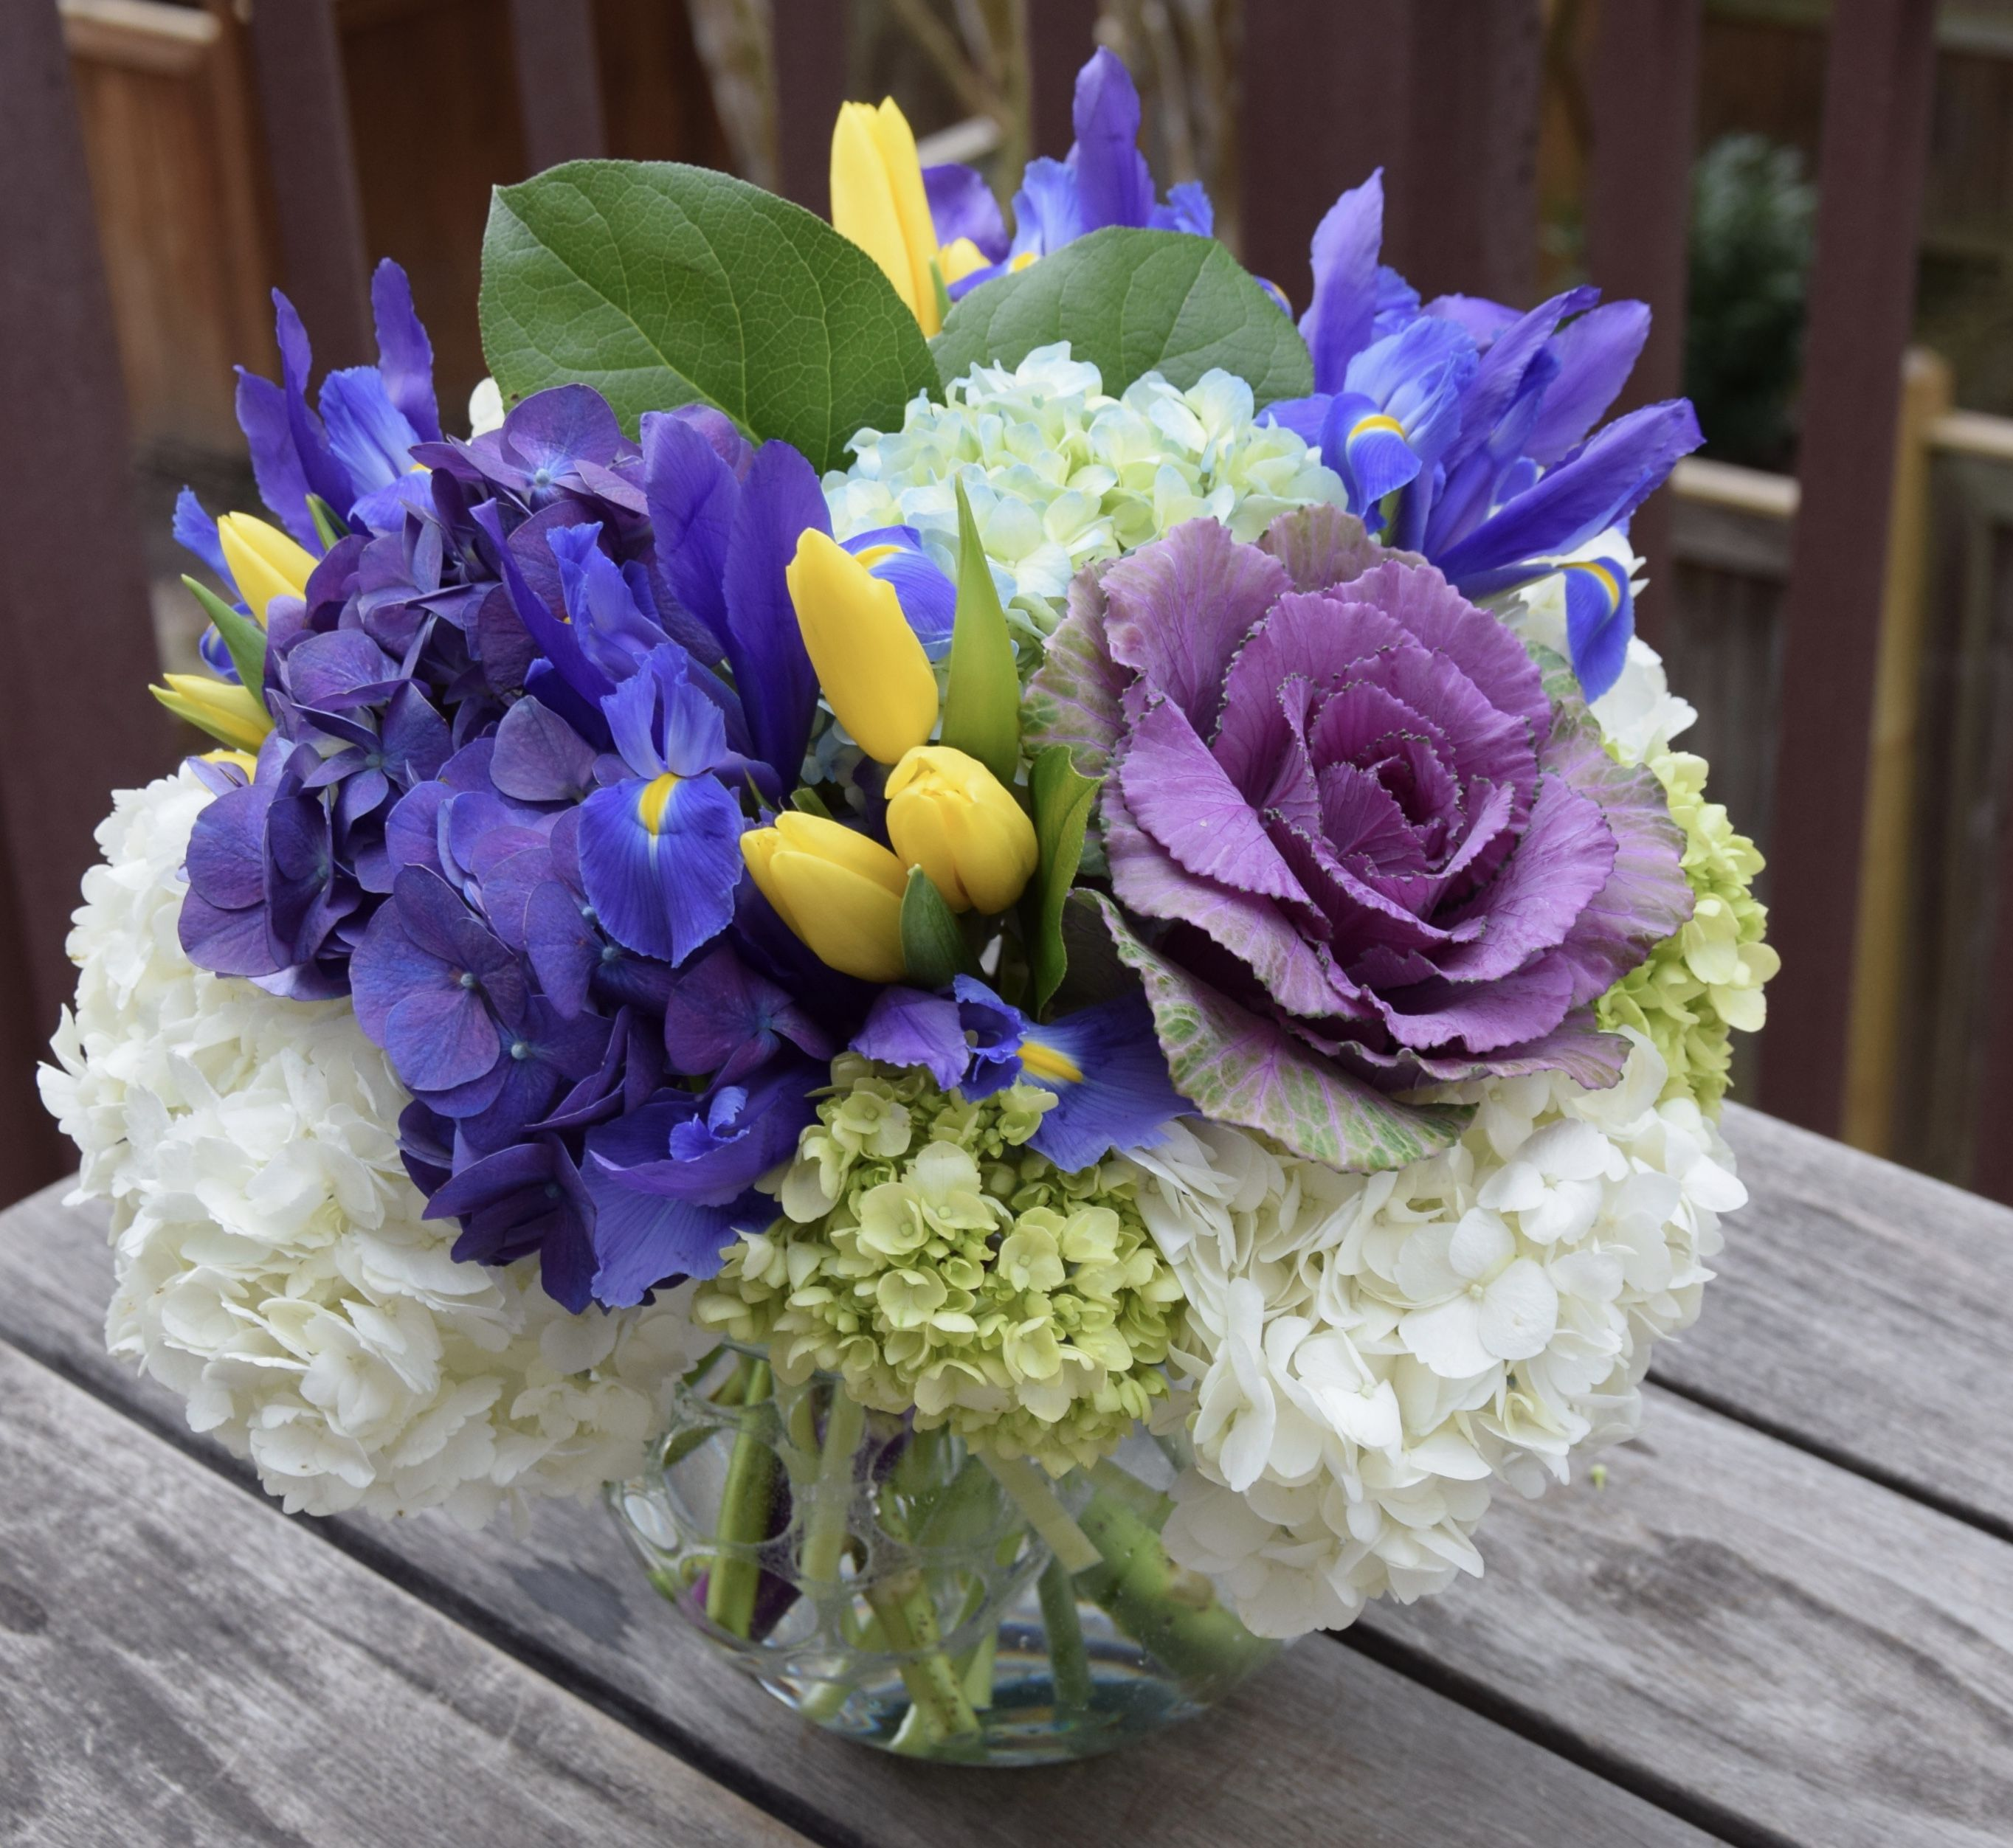 Masculine Flower Arrangement With Hydrangeas Irises Kale And Tulips Iris Flowers Iris Bouquet Flower Arrangements